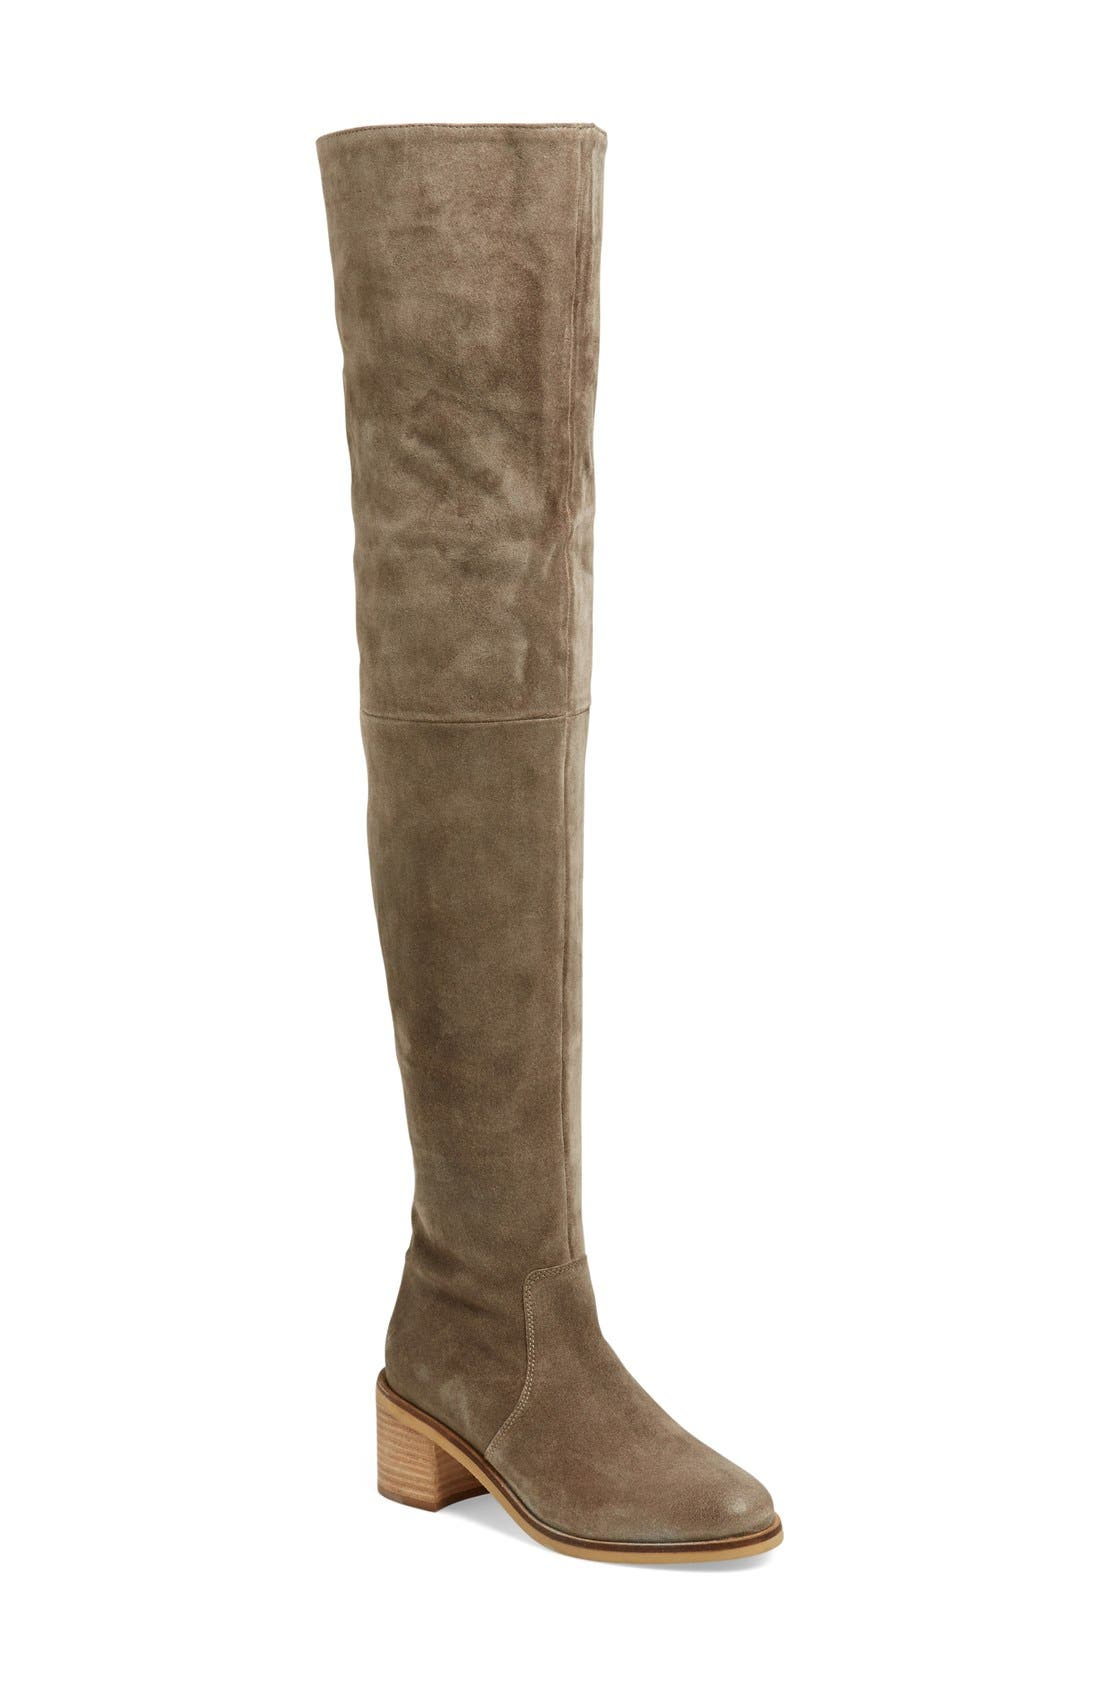 Main Image - Seychelles 'Sardonyx' Thigh High Boot (Women)